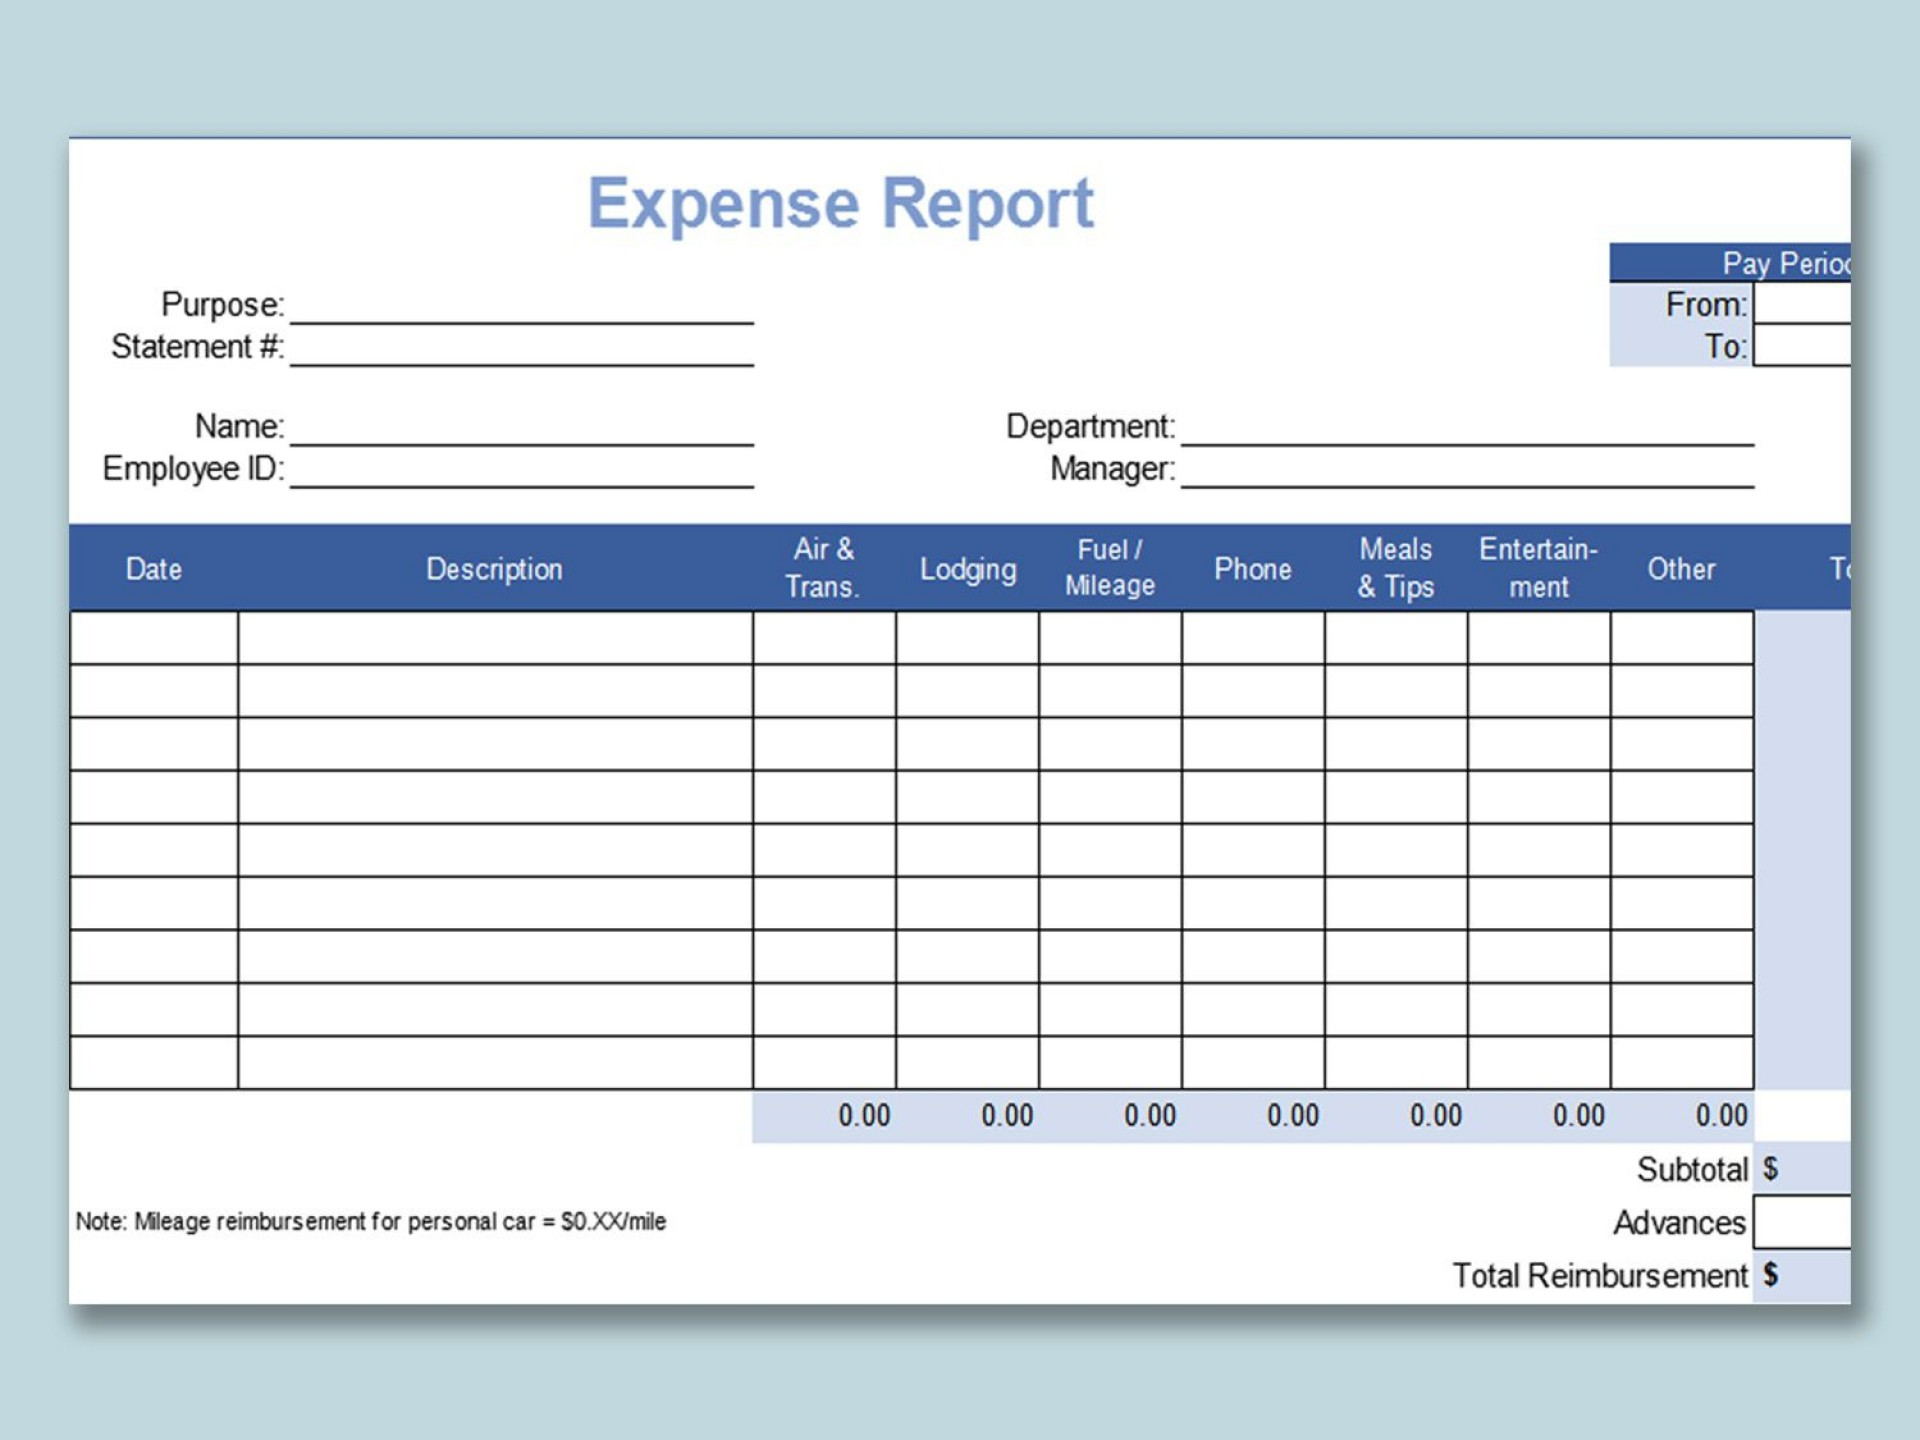 001 Incredible Travel Expense Report Template Inspiration  Format Excel Free1920